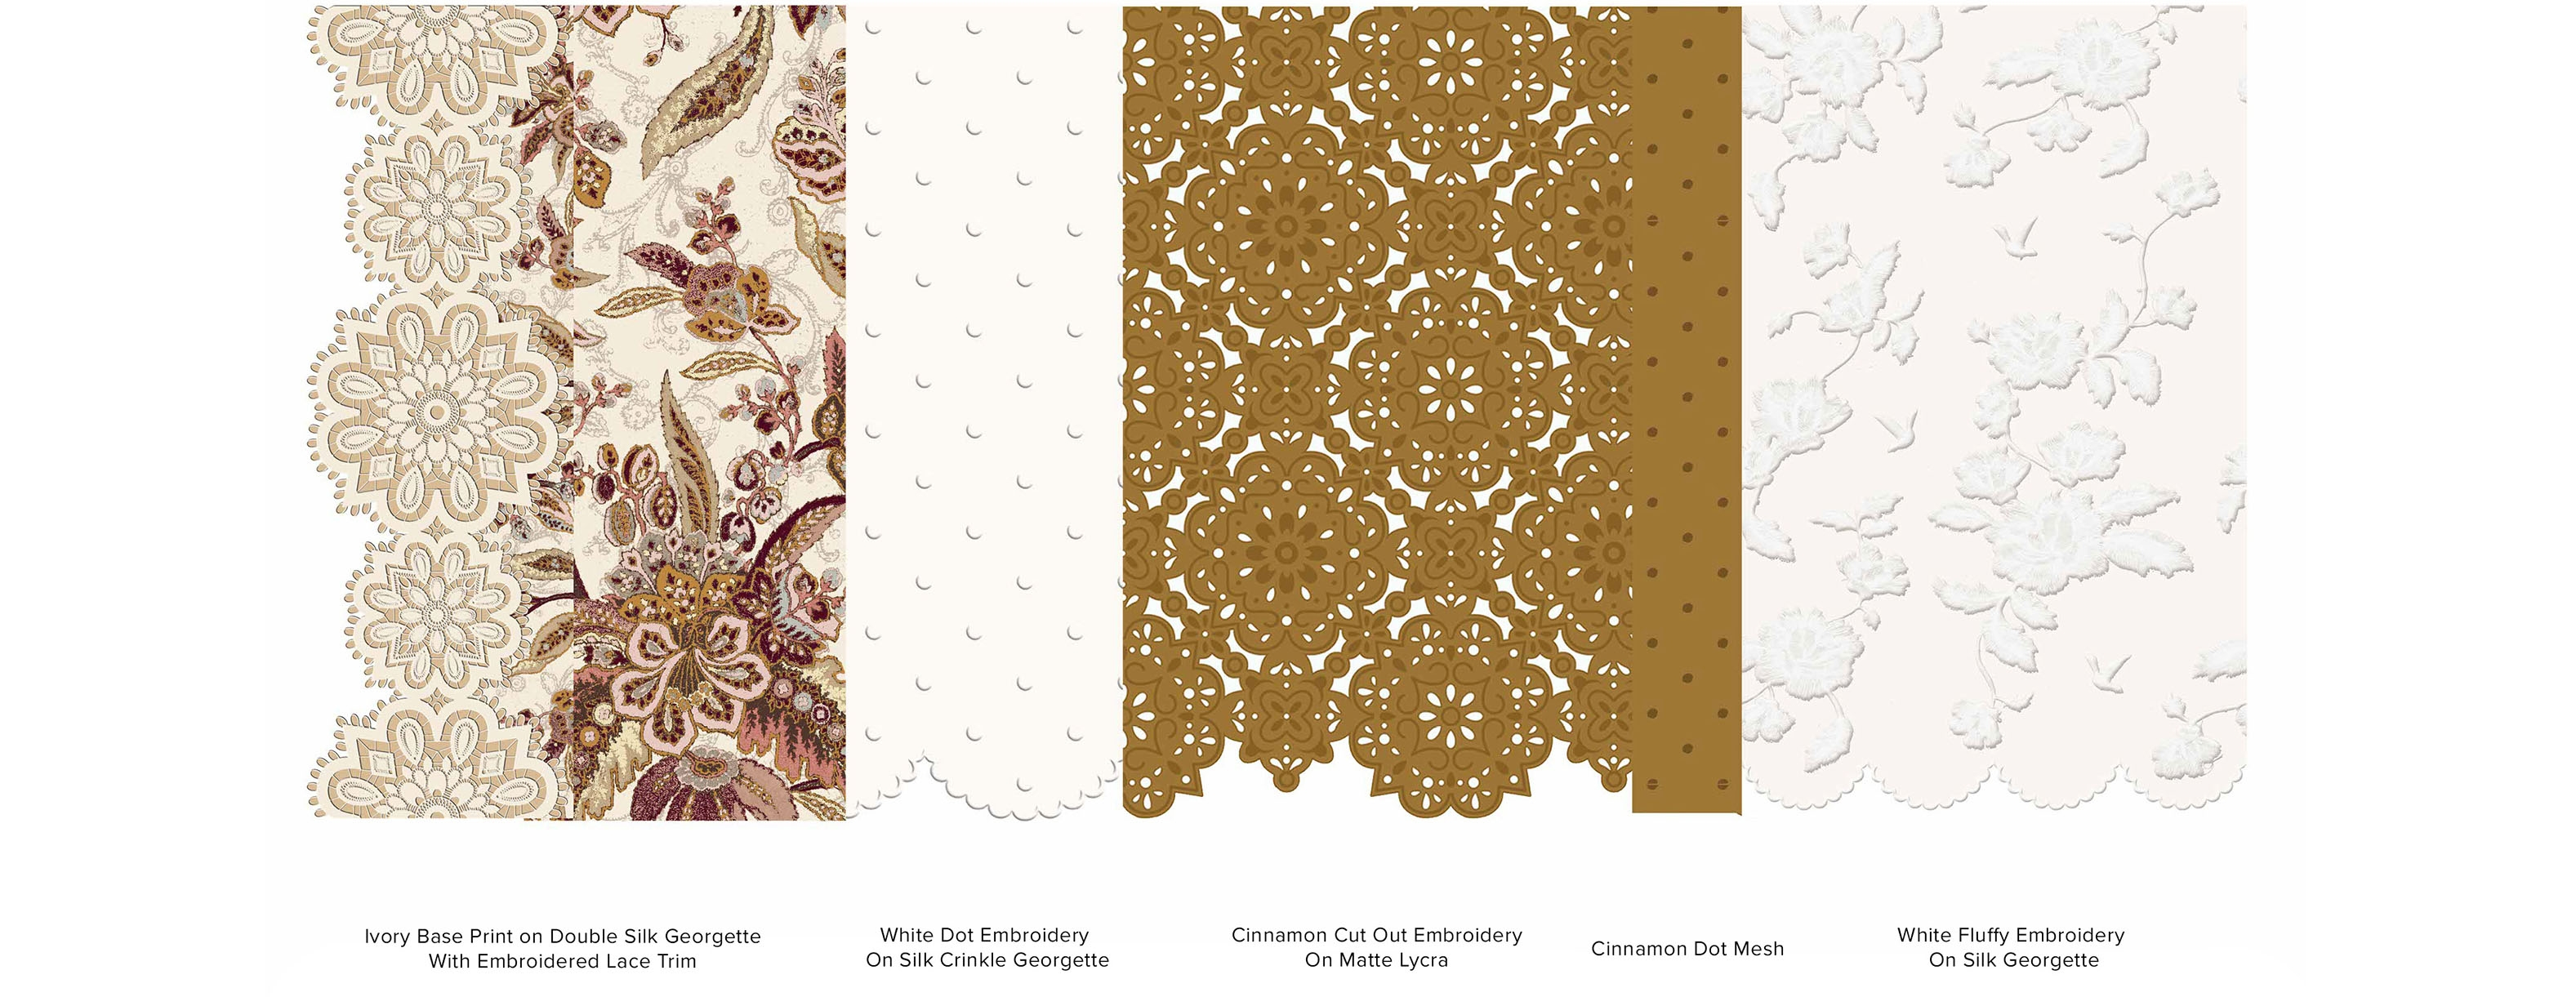 Swatches of the lighter coloured fabrications used in the capsule collection